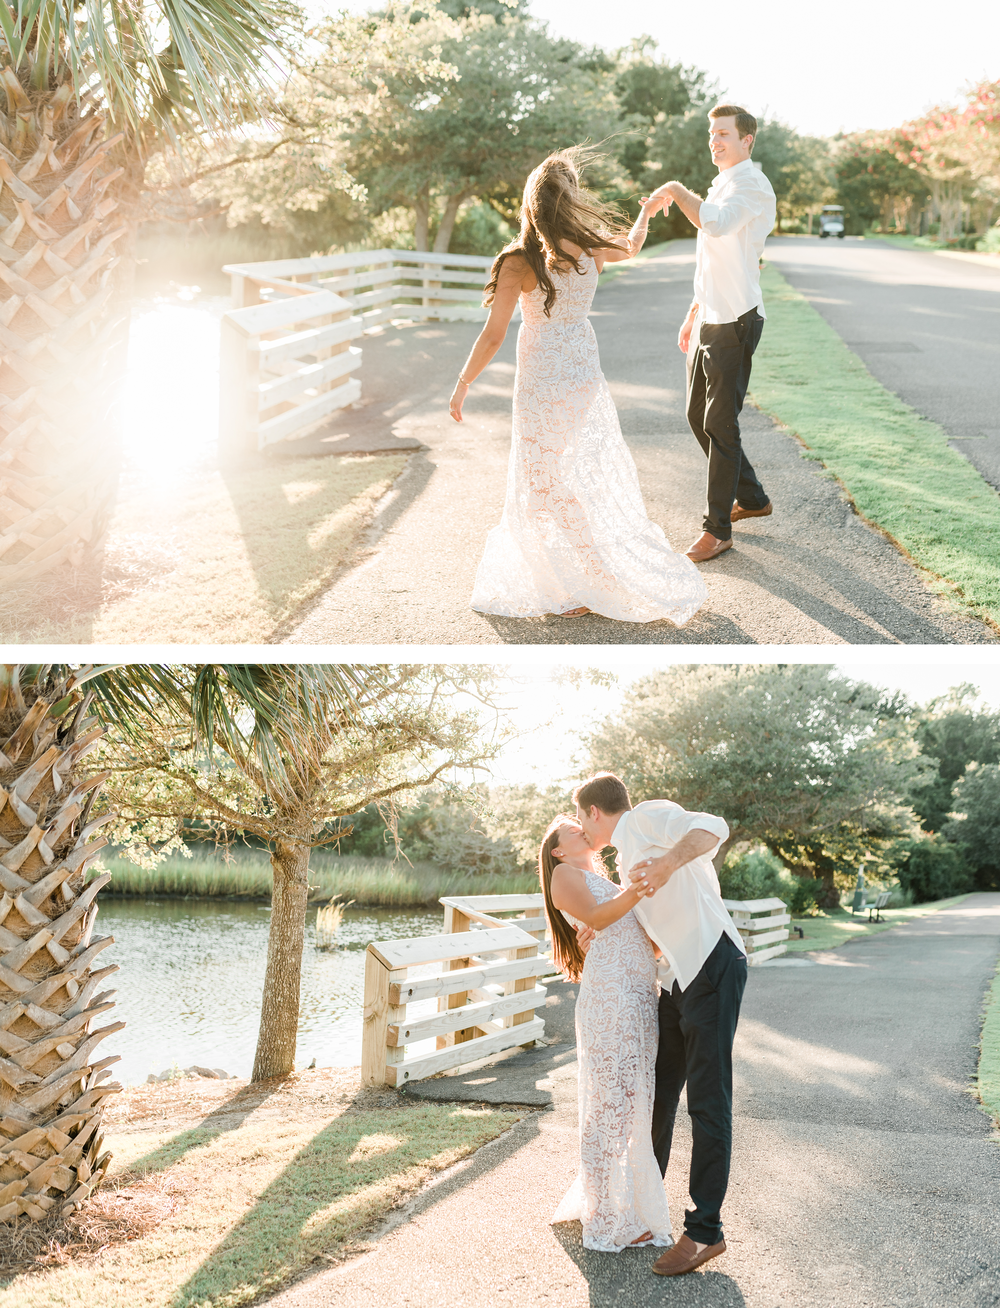 Evan Haley Engagement_Pawleys Island SC_Kristen Paige Photography_Gallery 7.png